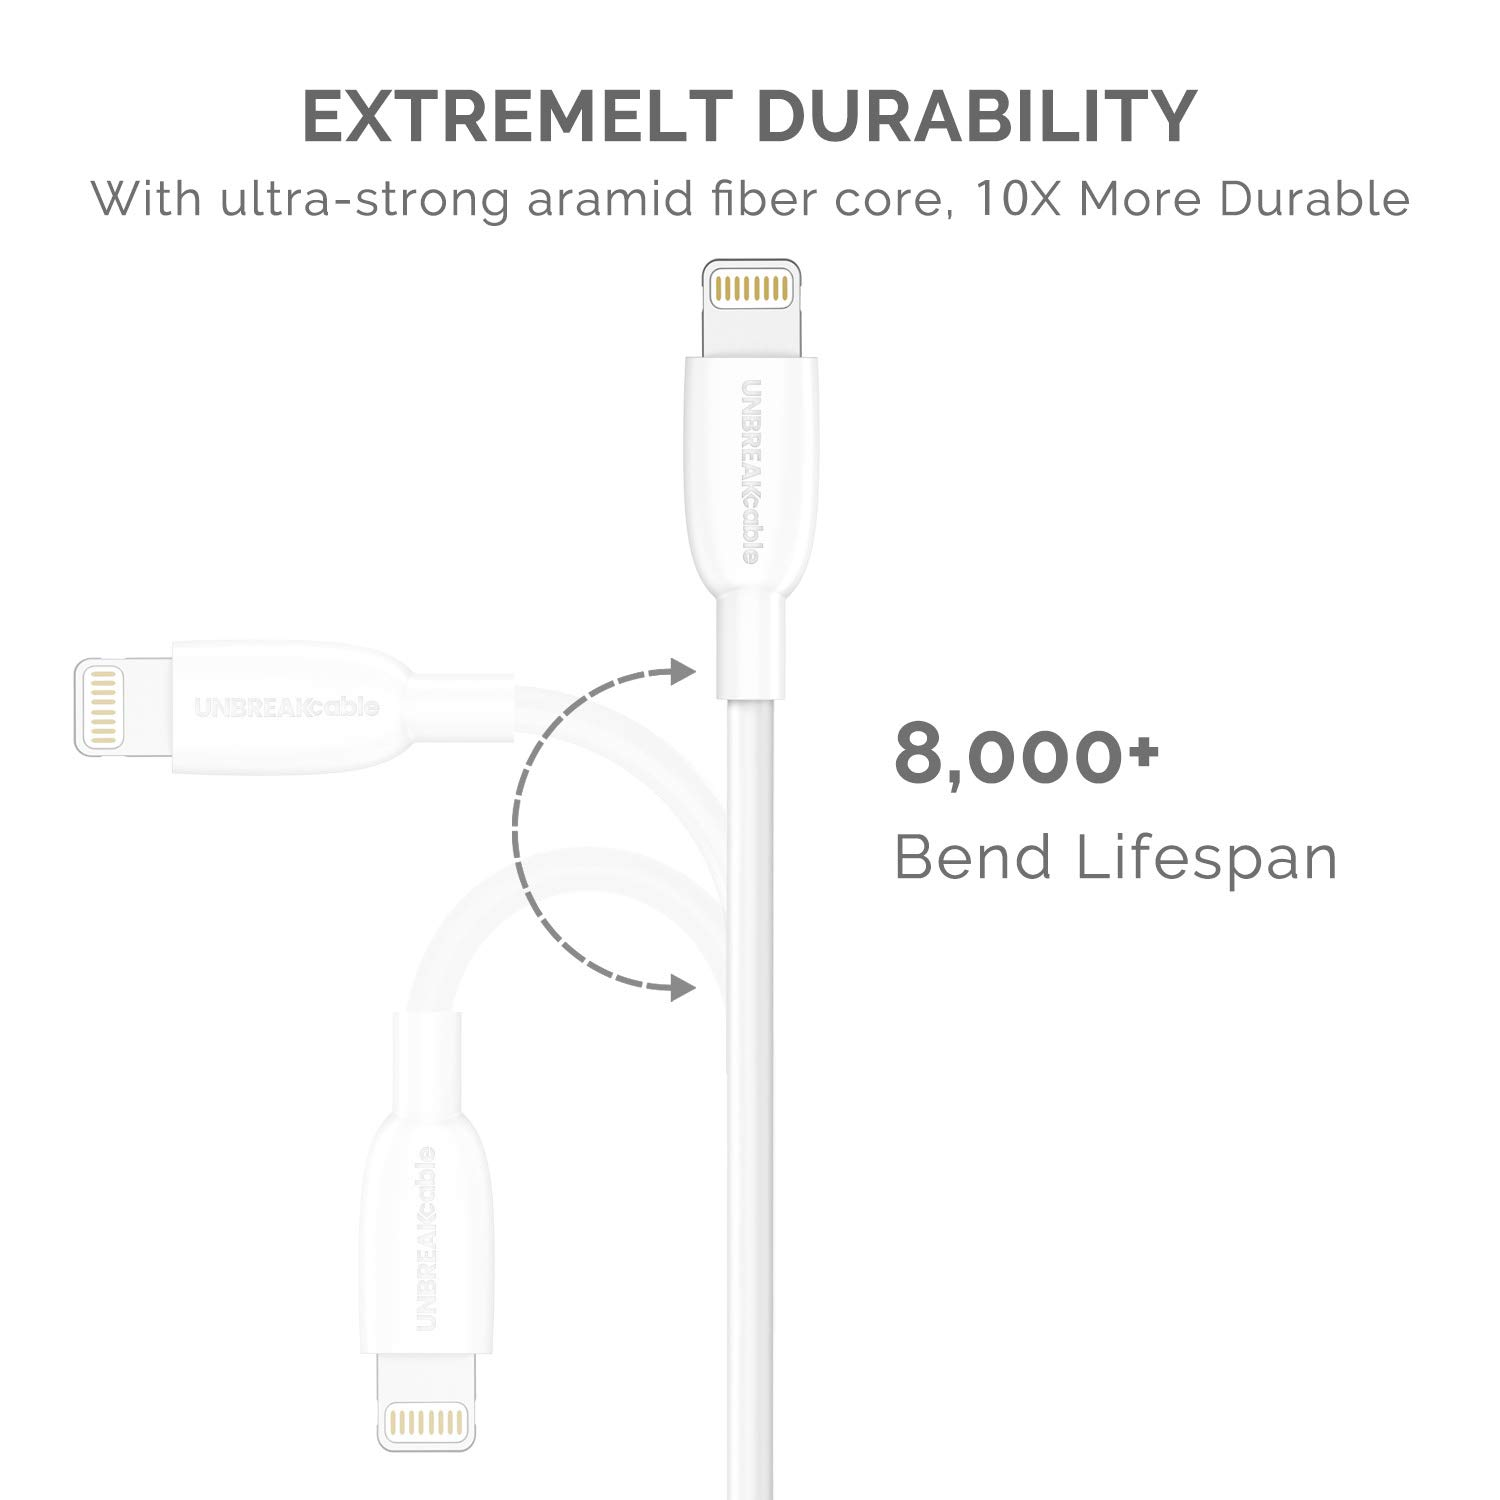 3.3ft// 1M Compatible with iPhone XS XS Max X XR 8 Plus 7 Plus 6s 6 Plus SE 5s 5c 5 UNBREAKcable Lightning Cable iPhone Charger USB Fast Charging Cable Black Apple MFi Certified iPod iPad